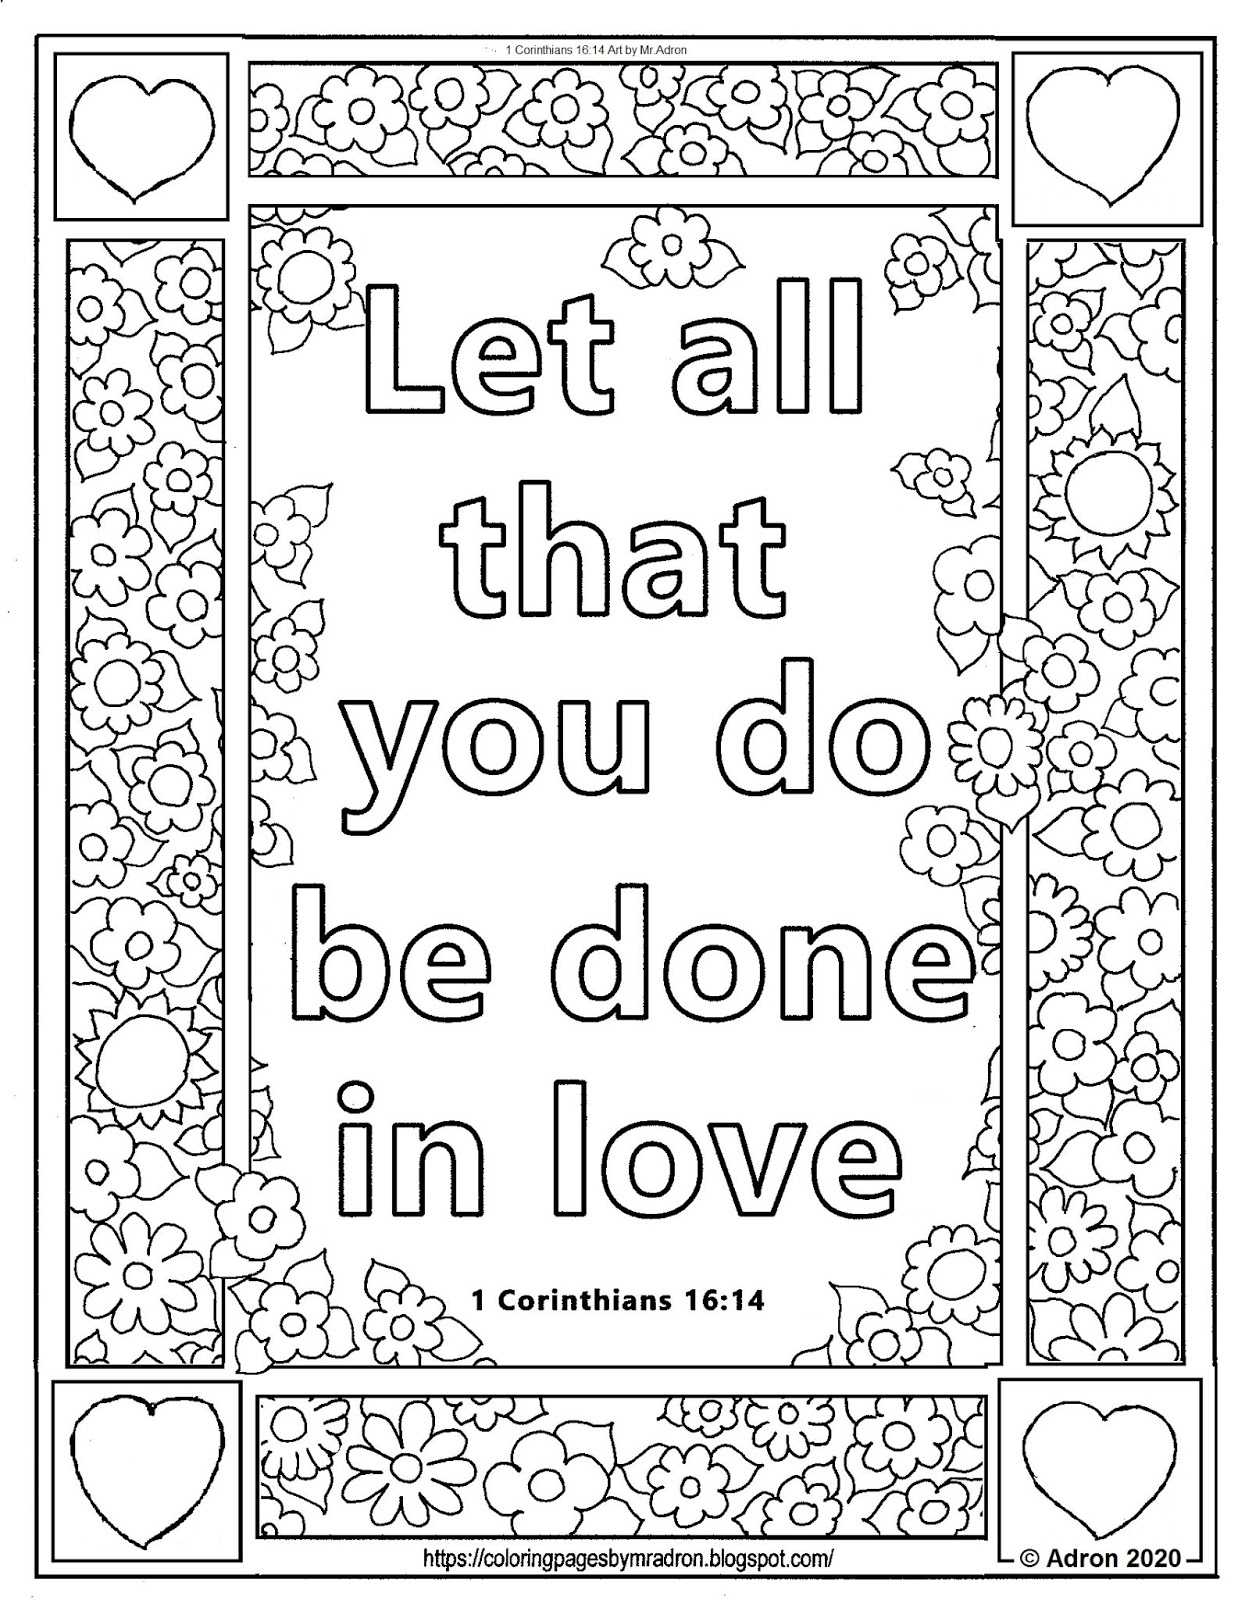 Coloring Pages for Kids by Mr. Adron: Free 1 Corinthians